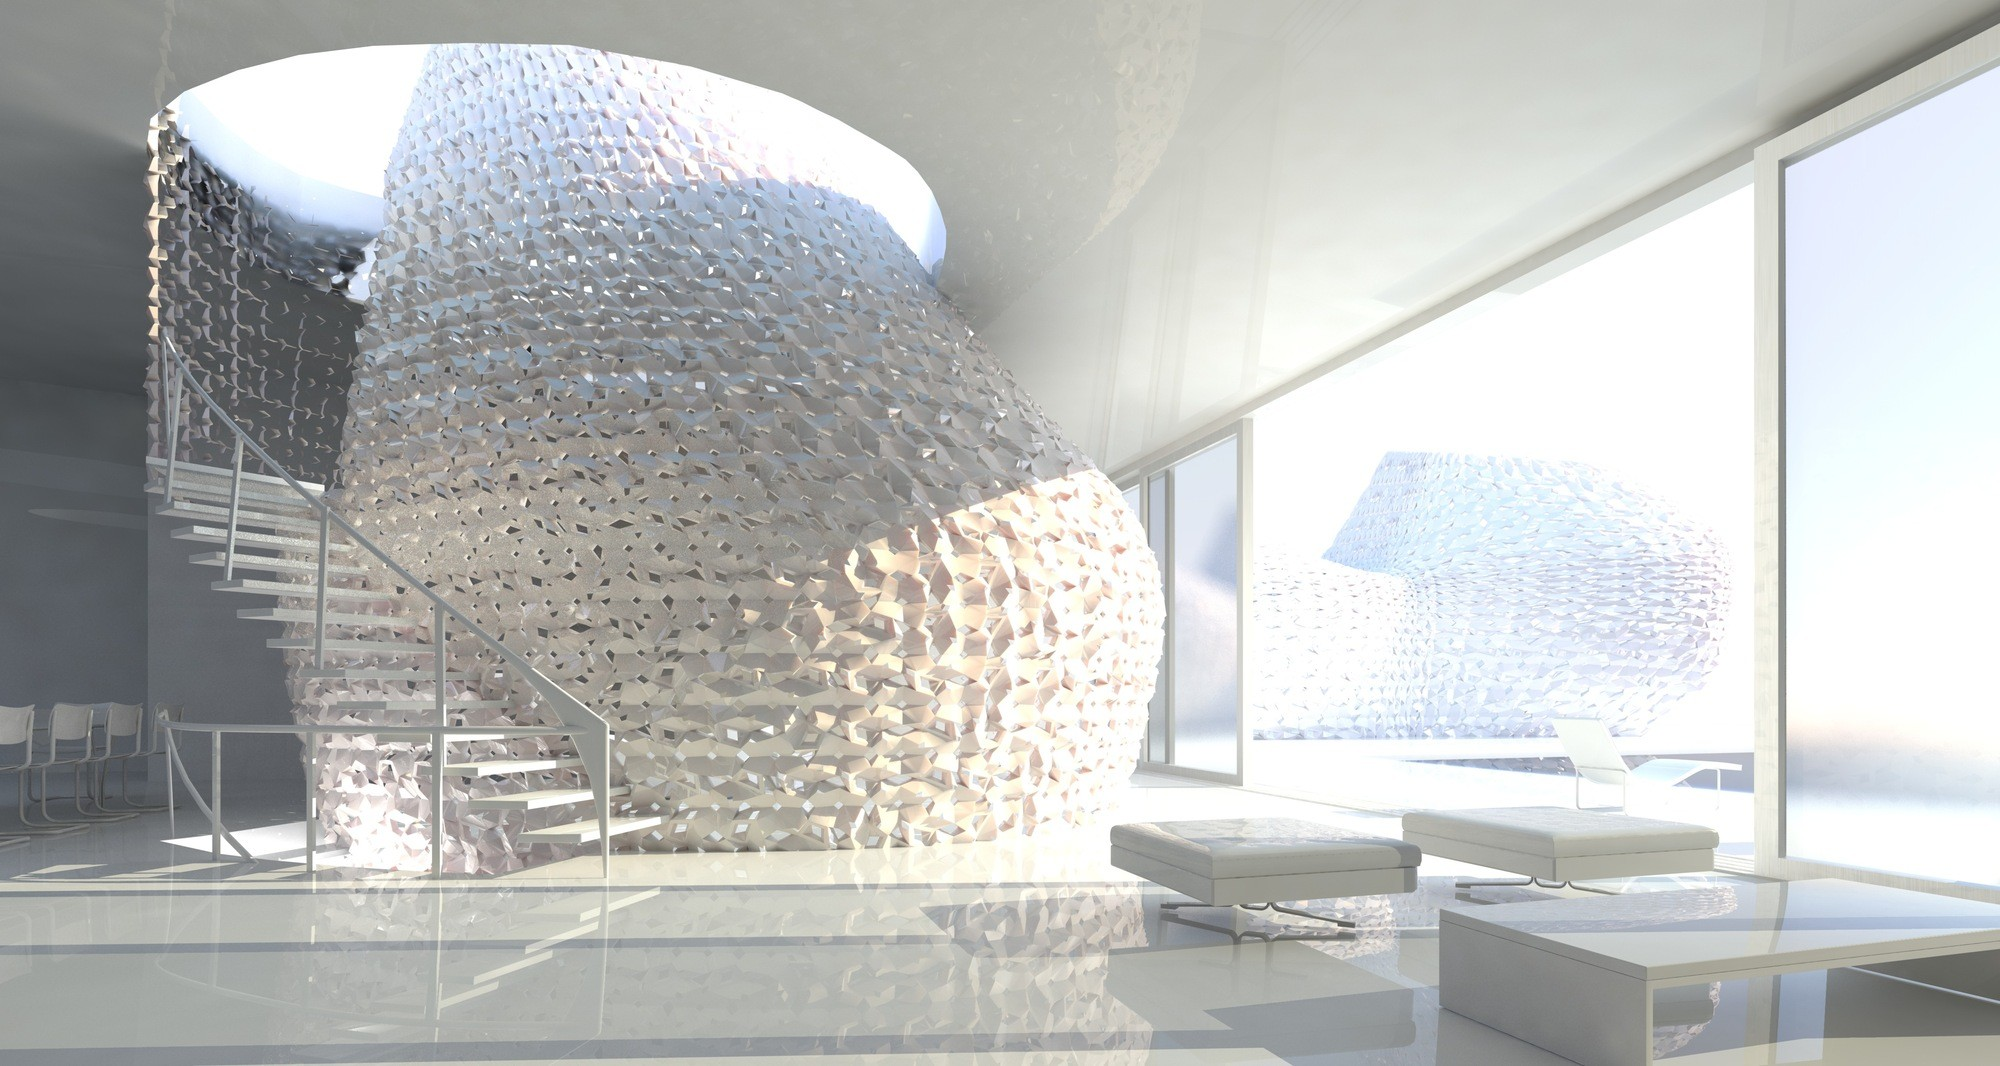 Autodesk Announces $100 Million Investment in 3D Printing, Many groups are working on innovative 3D Printing technologies, such as Emerging Objects' designs for a 3D printed house made from locally harvested salt. Image Courtesy of Emerging Objects